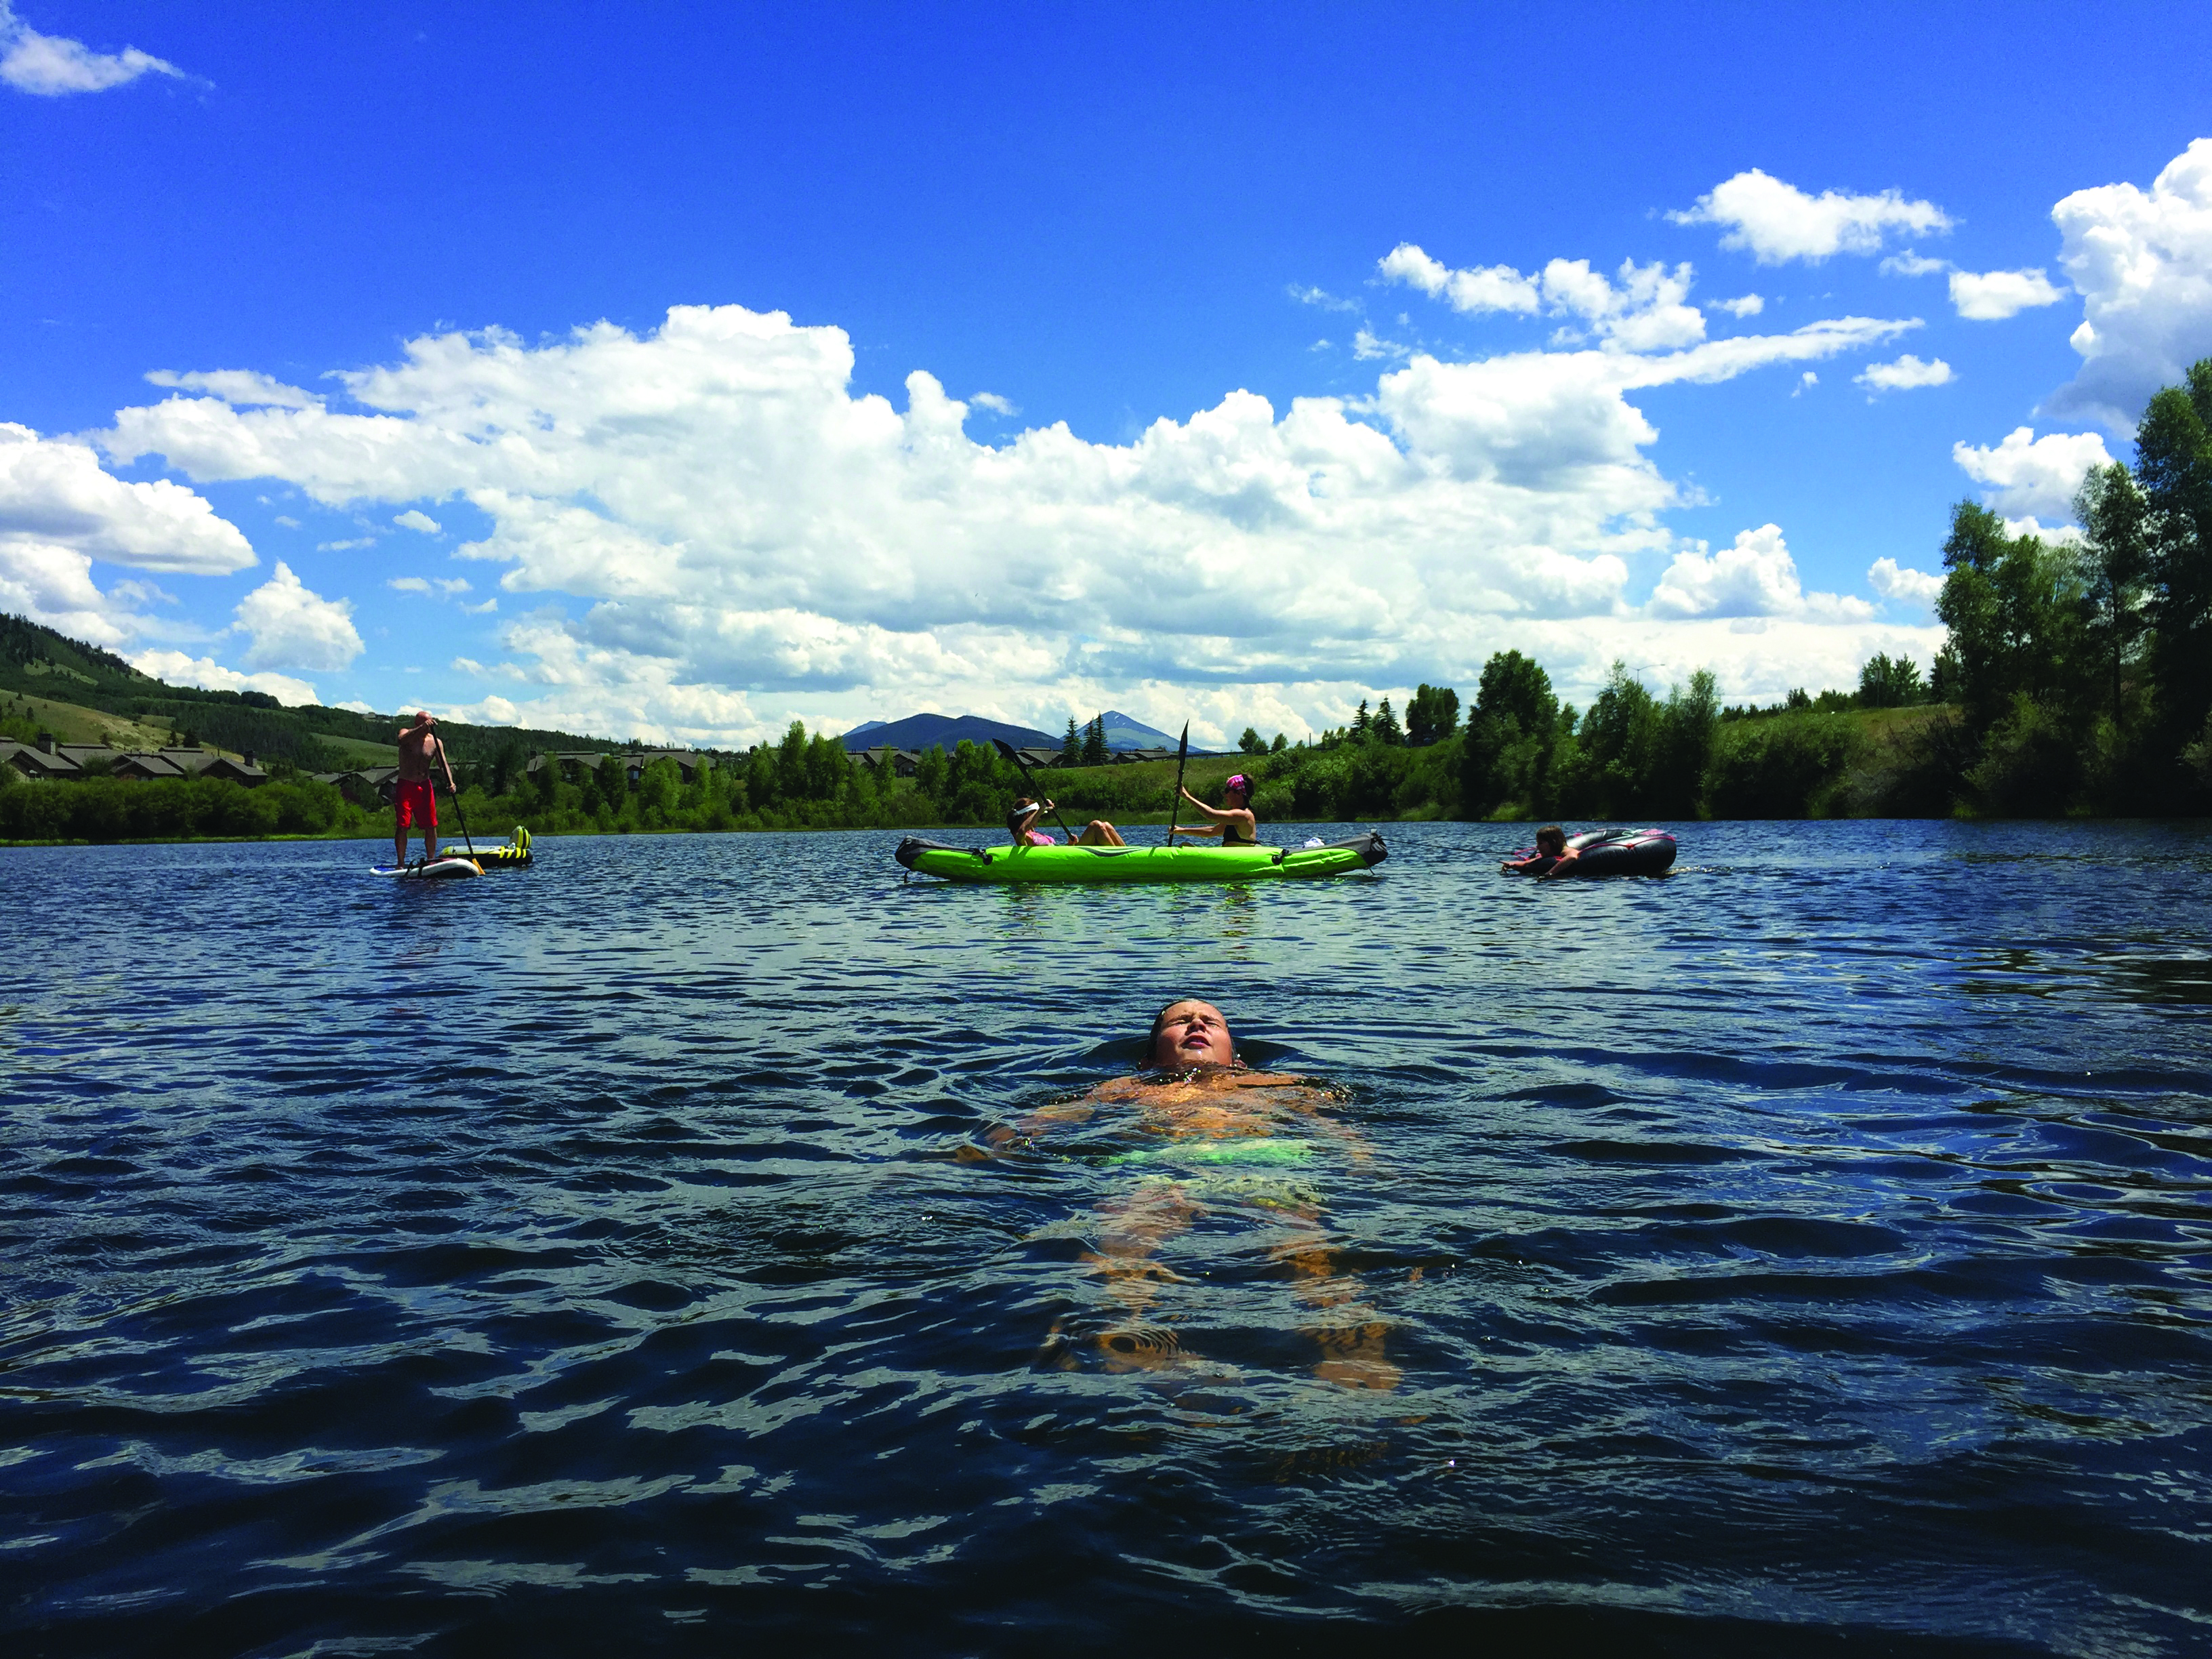 8 ways to live it up in Silverthorne this summer (sponsored)